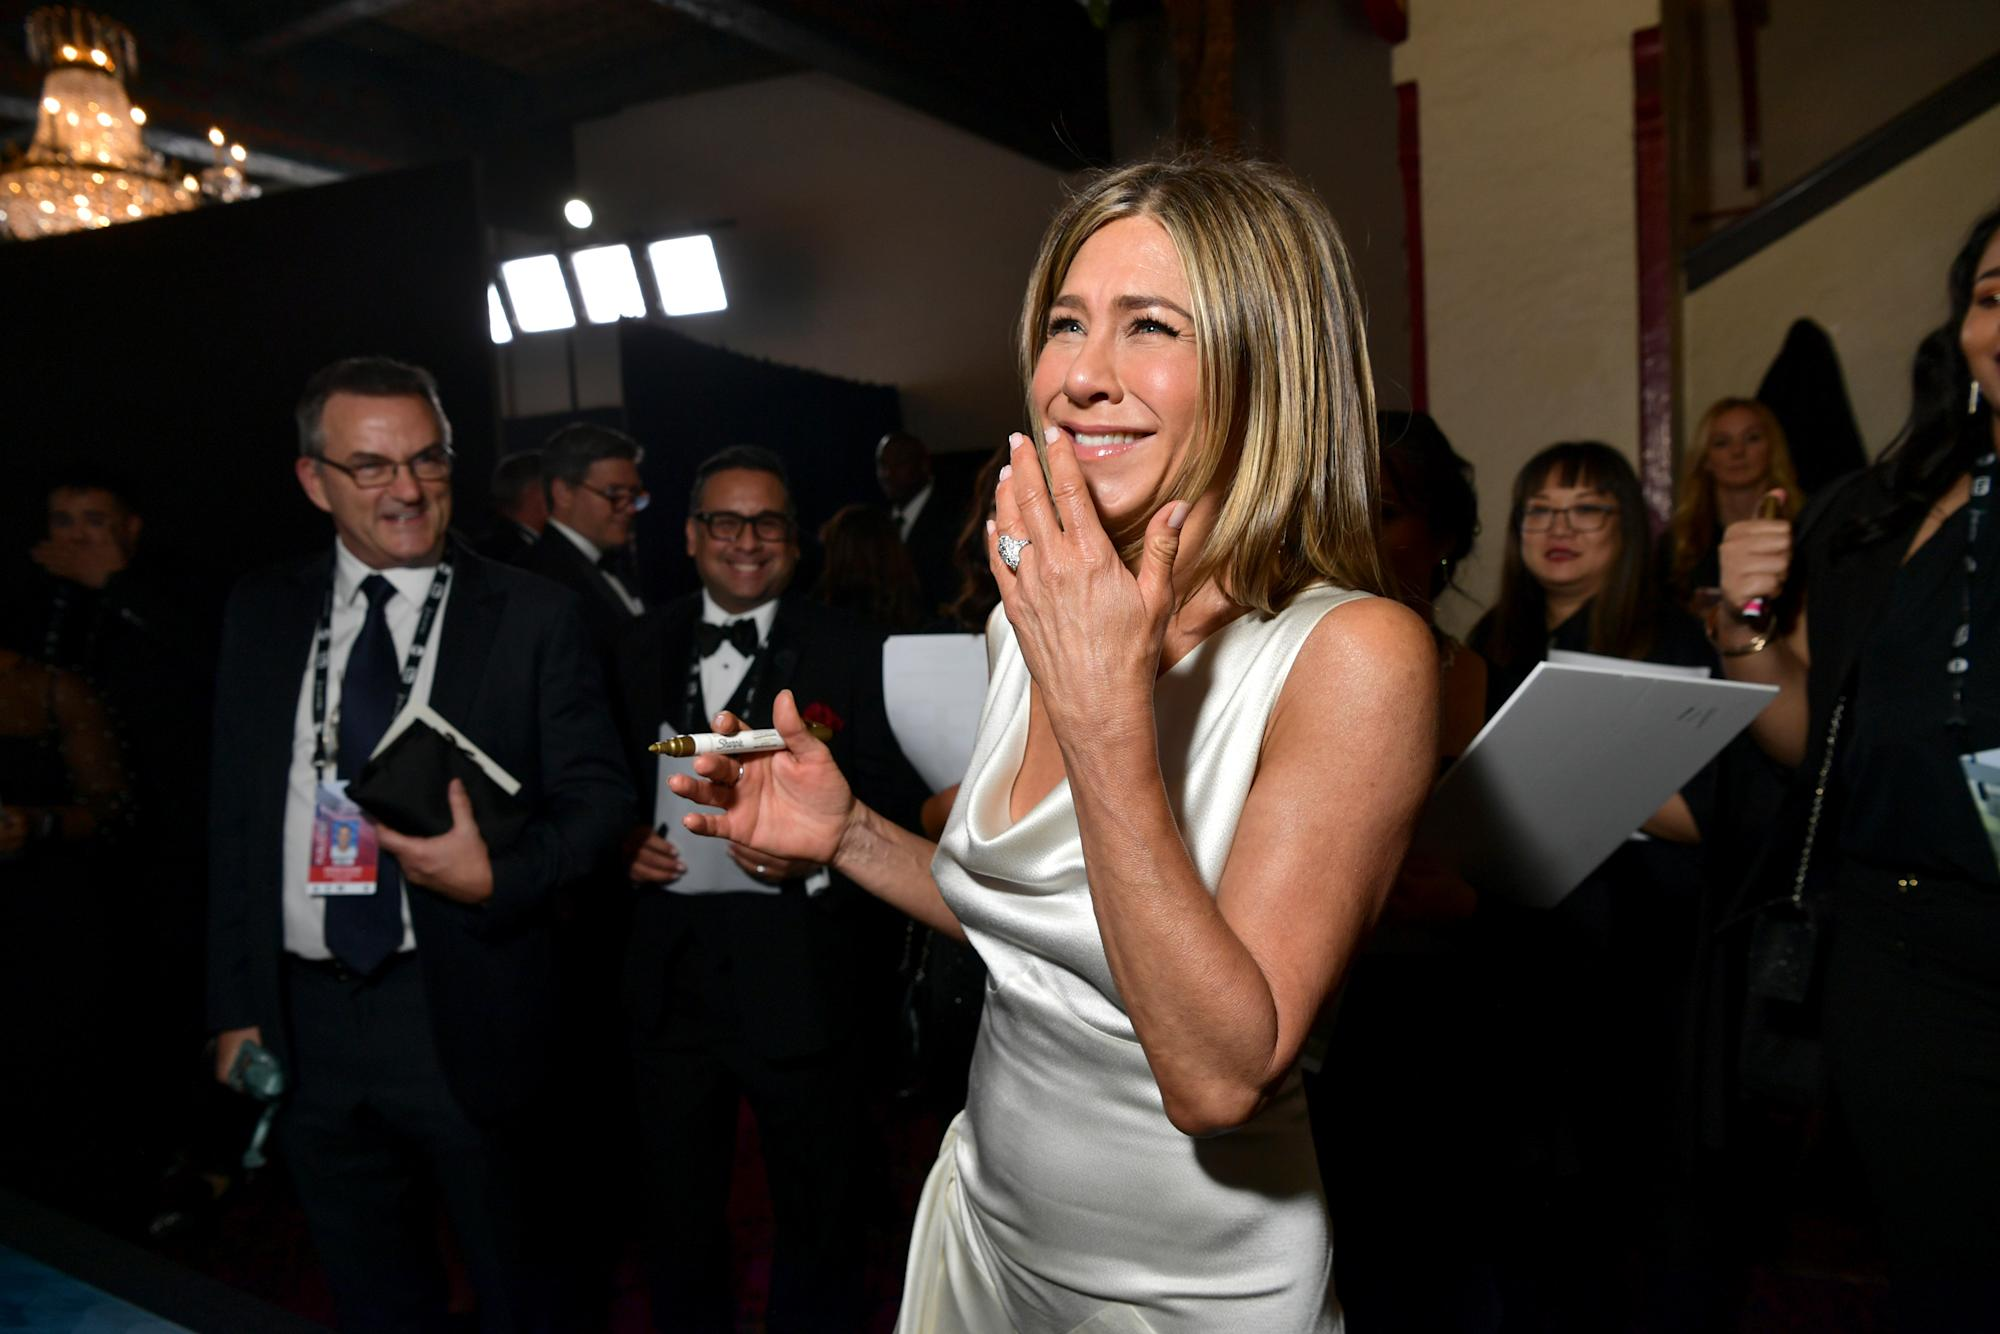 Jennifer Aniston cut people who didn't get the COVID-19 vaccine: Would you do the same?